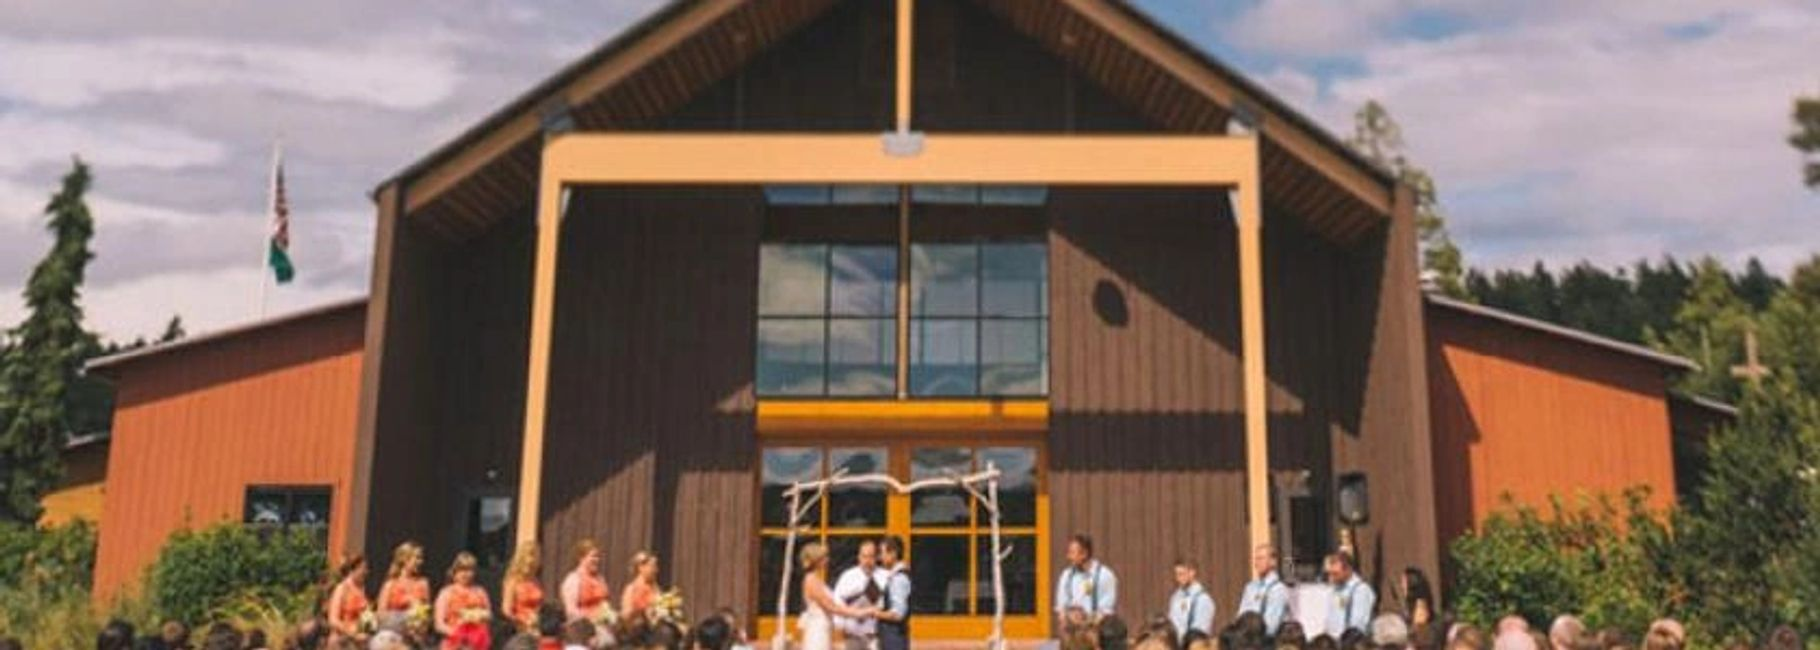 Lopez Island Lopez Community Center Islands Weddings and Events